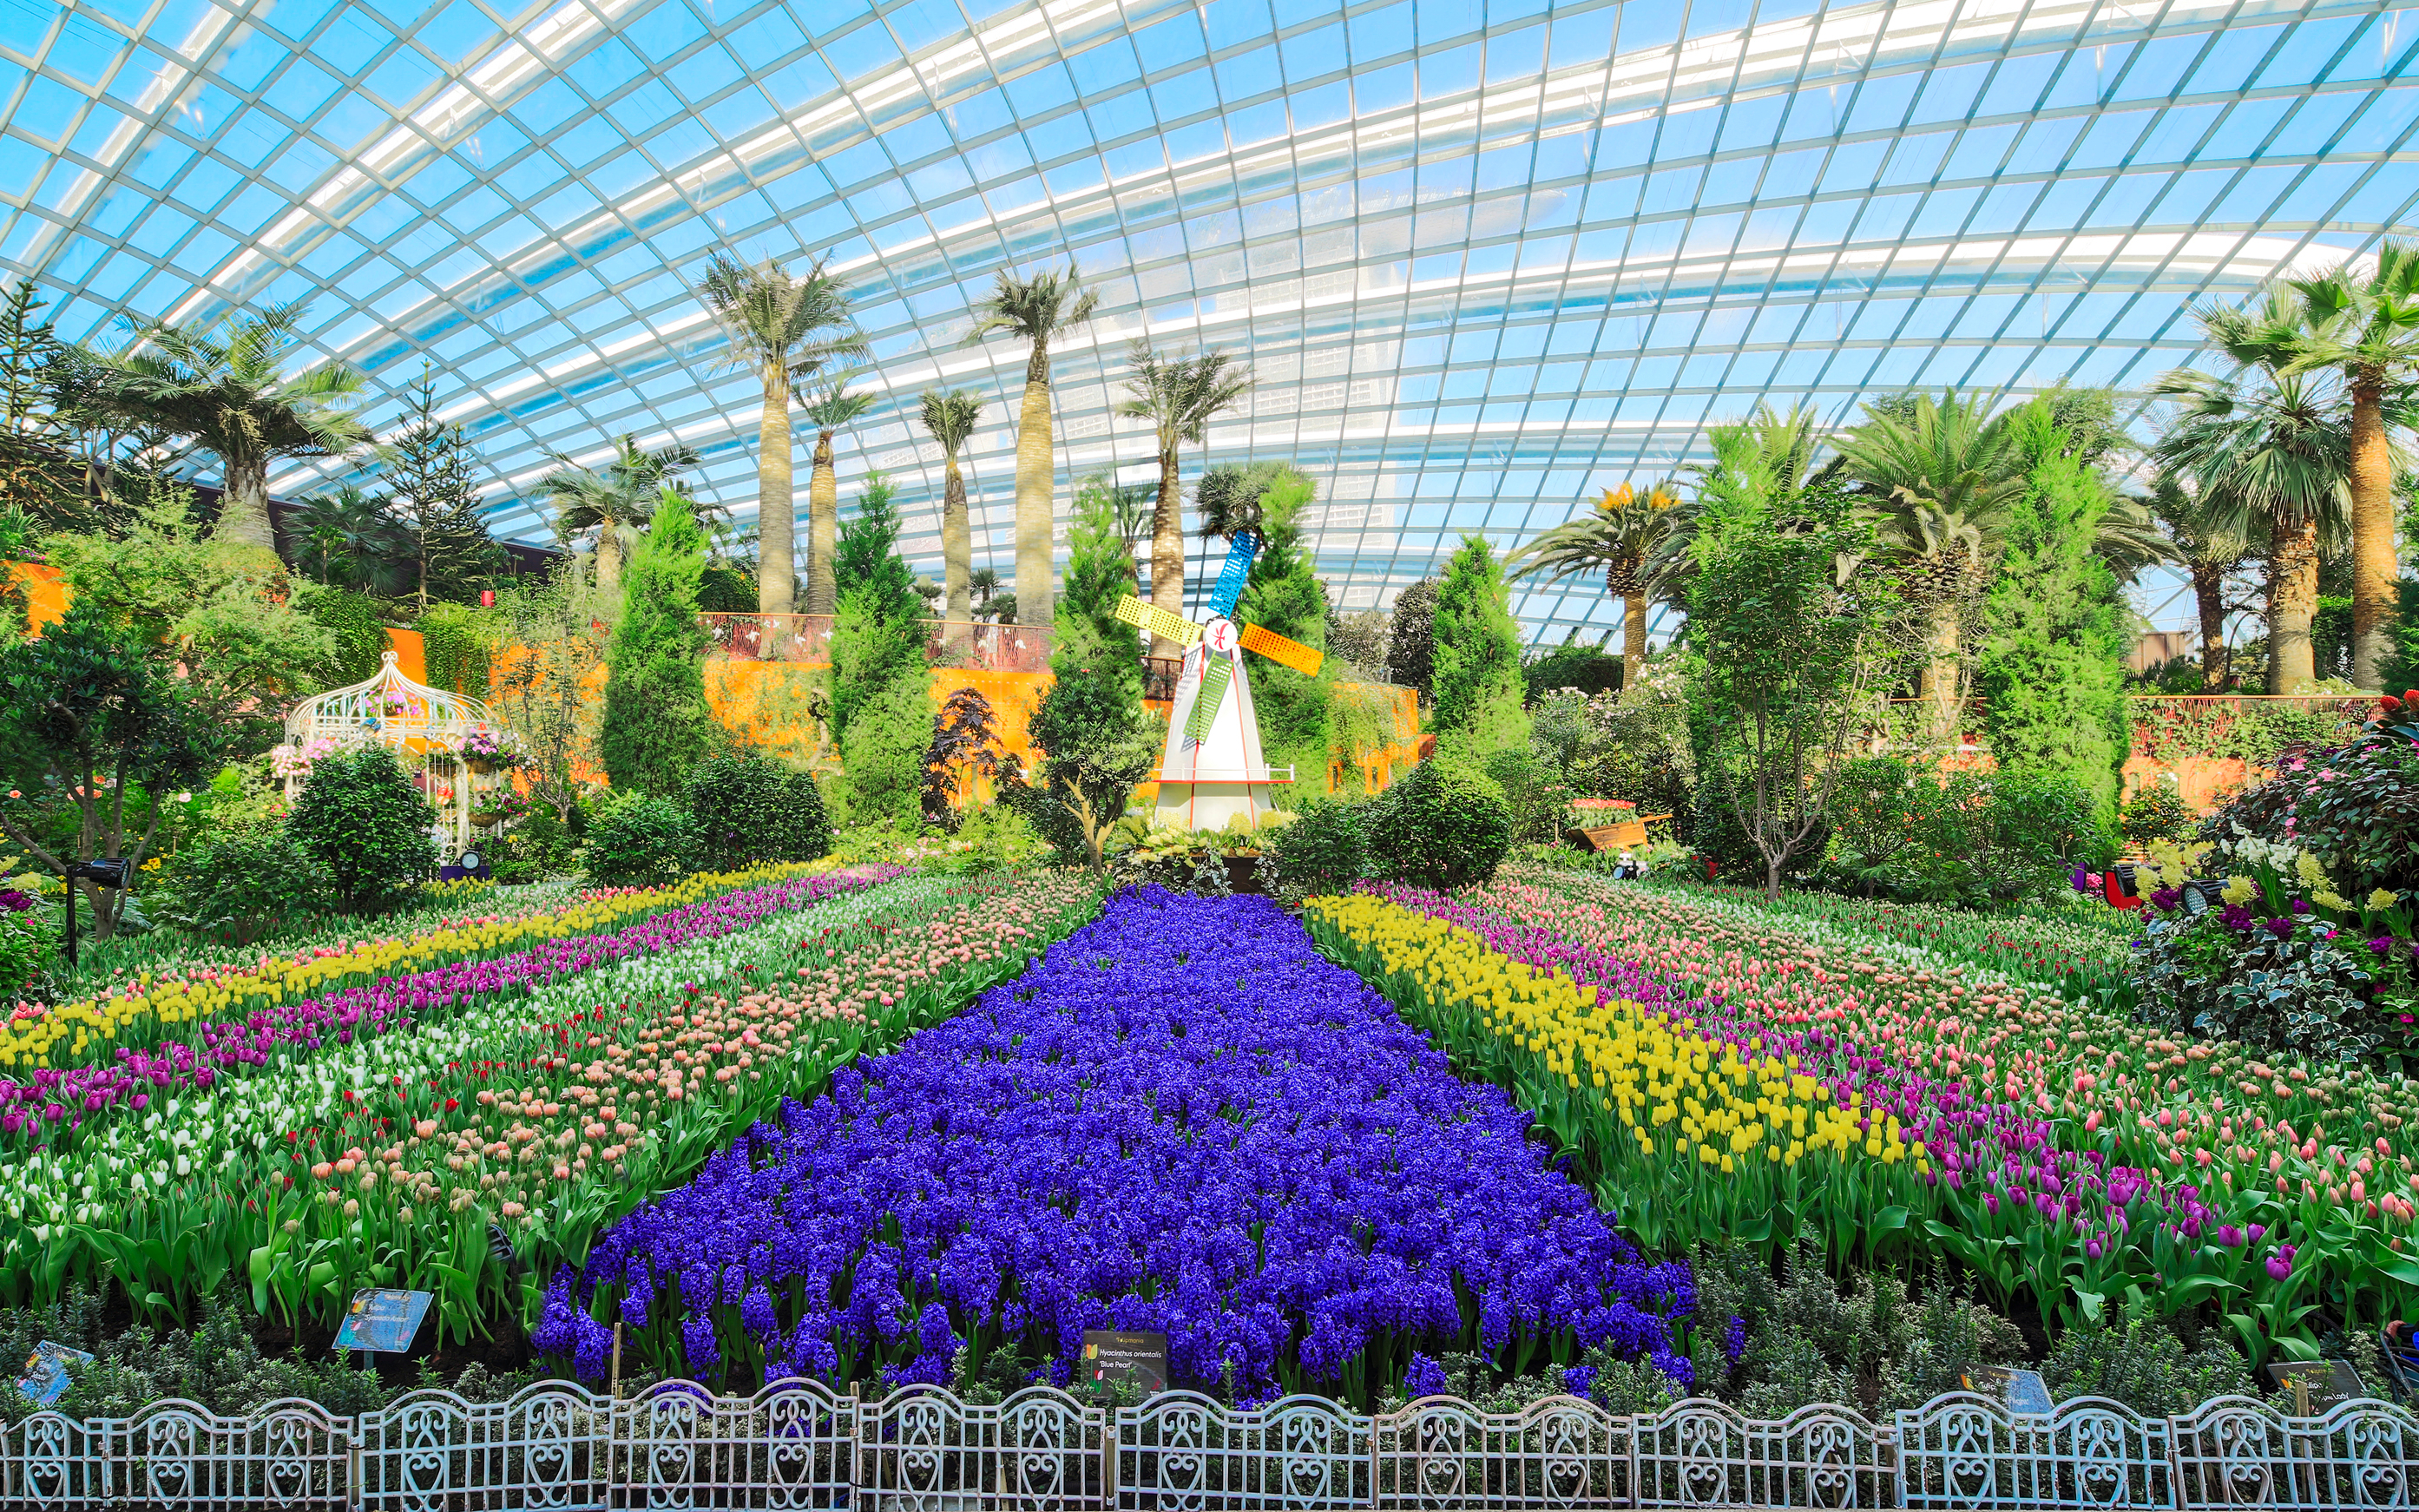 Garden By The Bay Flower skip the line: gardensthe bay flexible entry tickets | headout